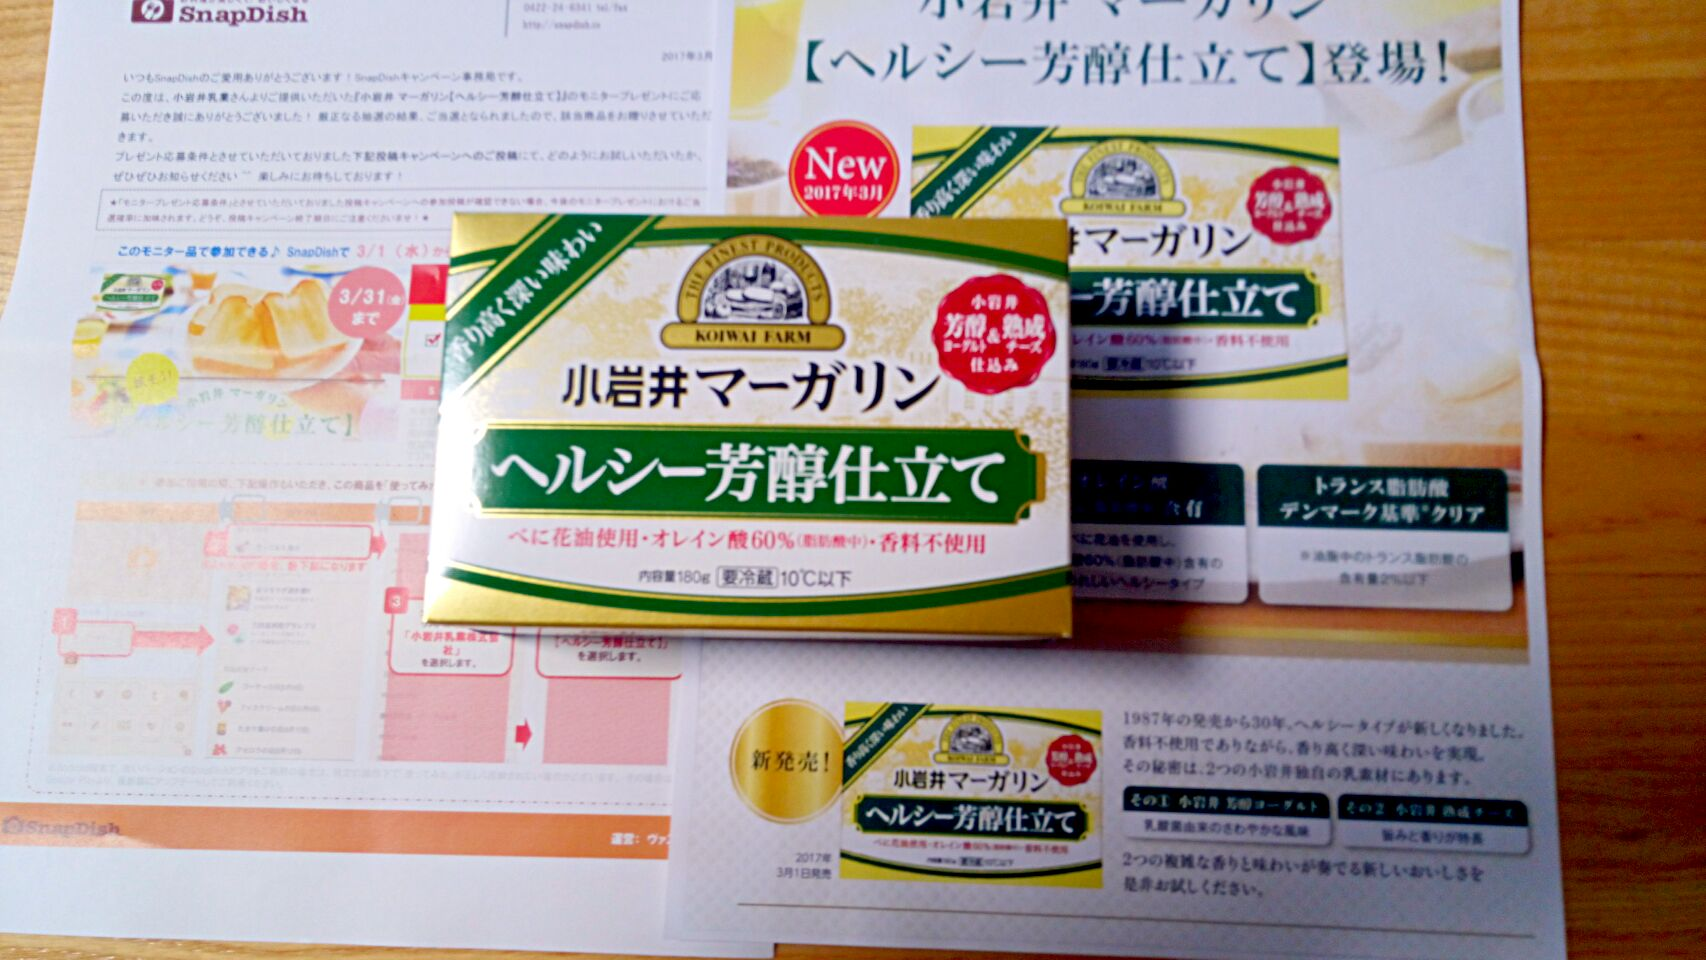 3/4 margarine #snapdish